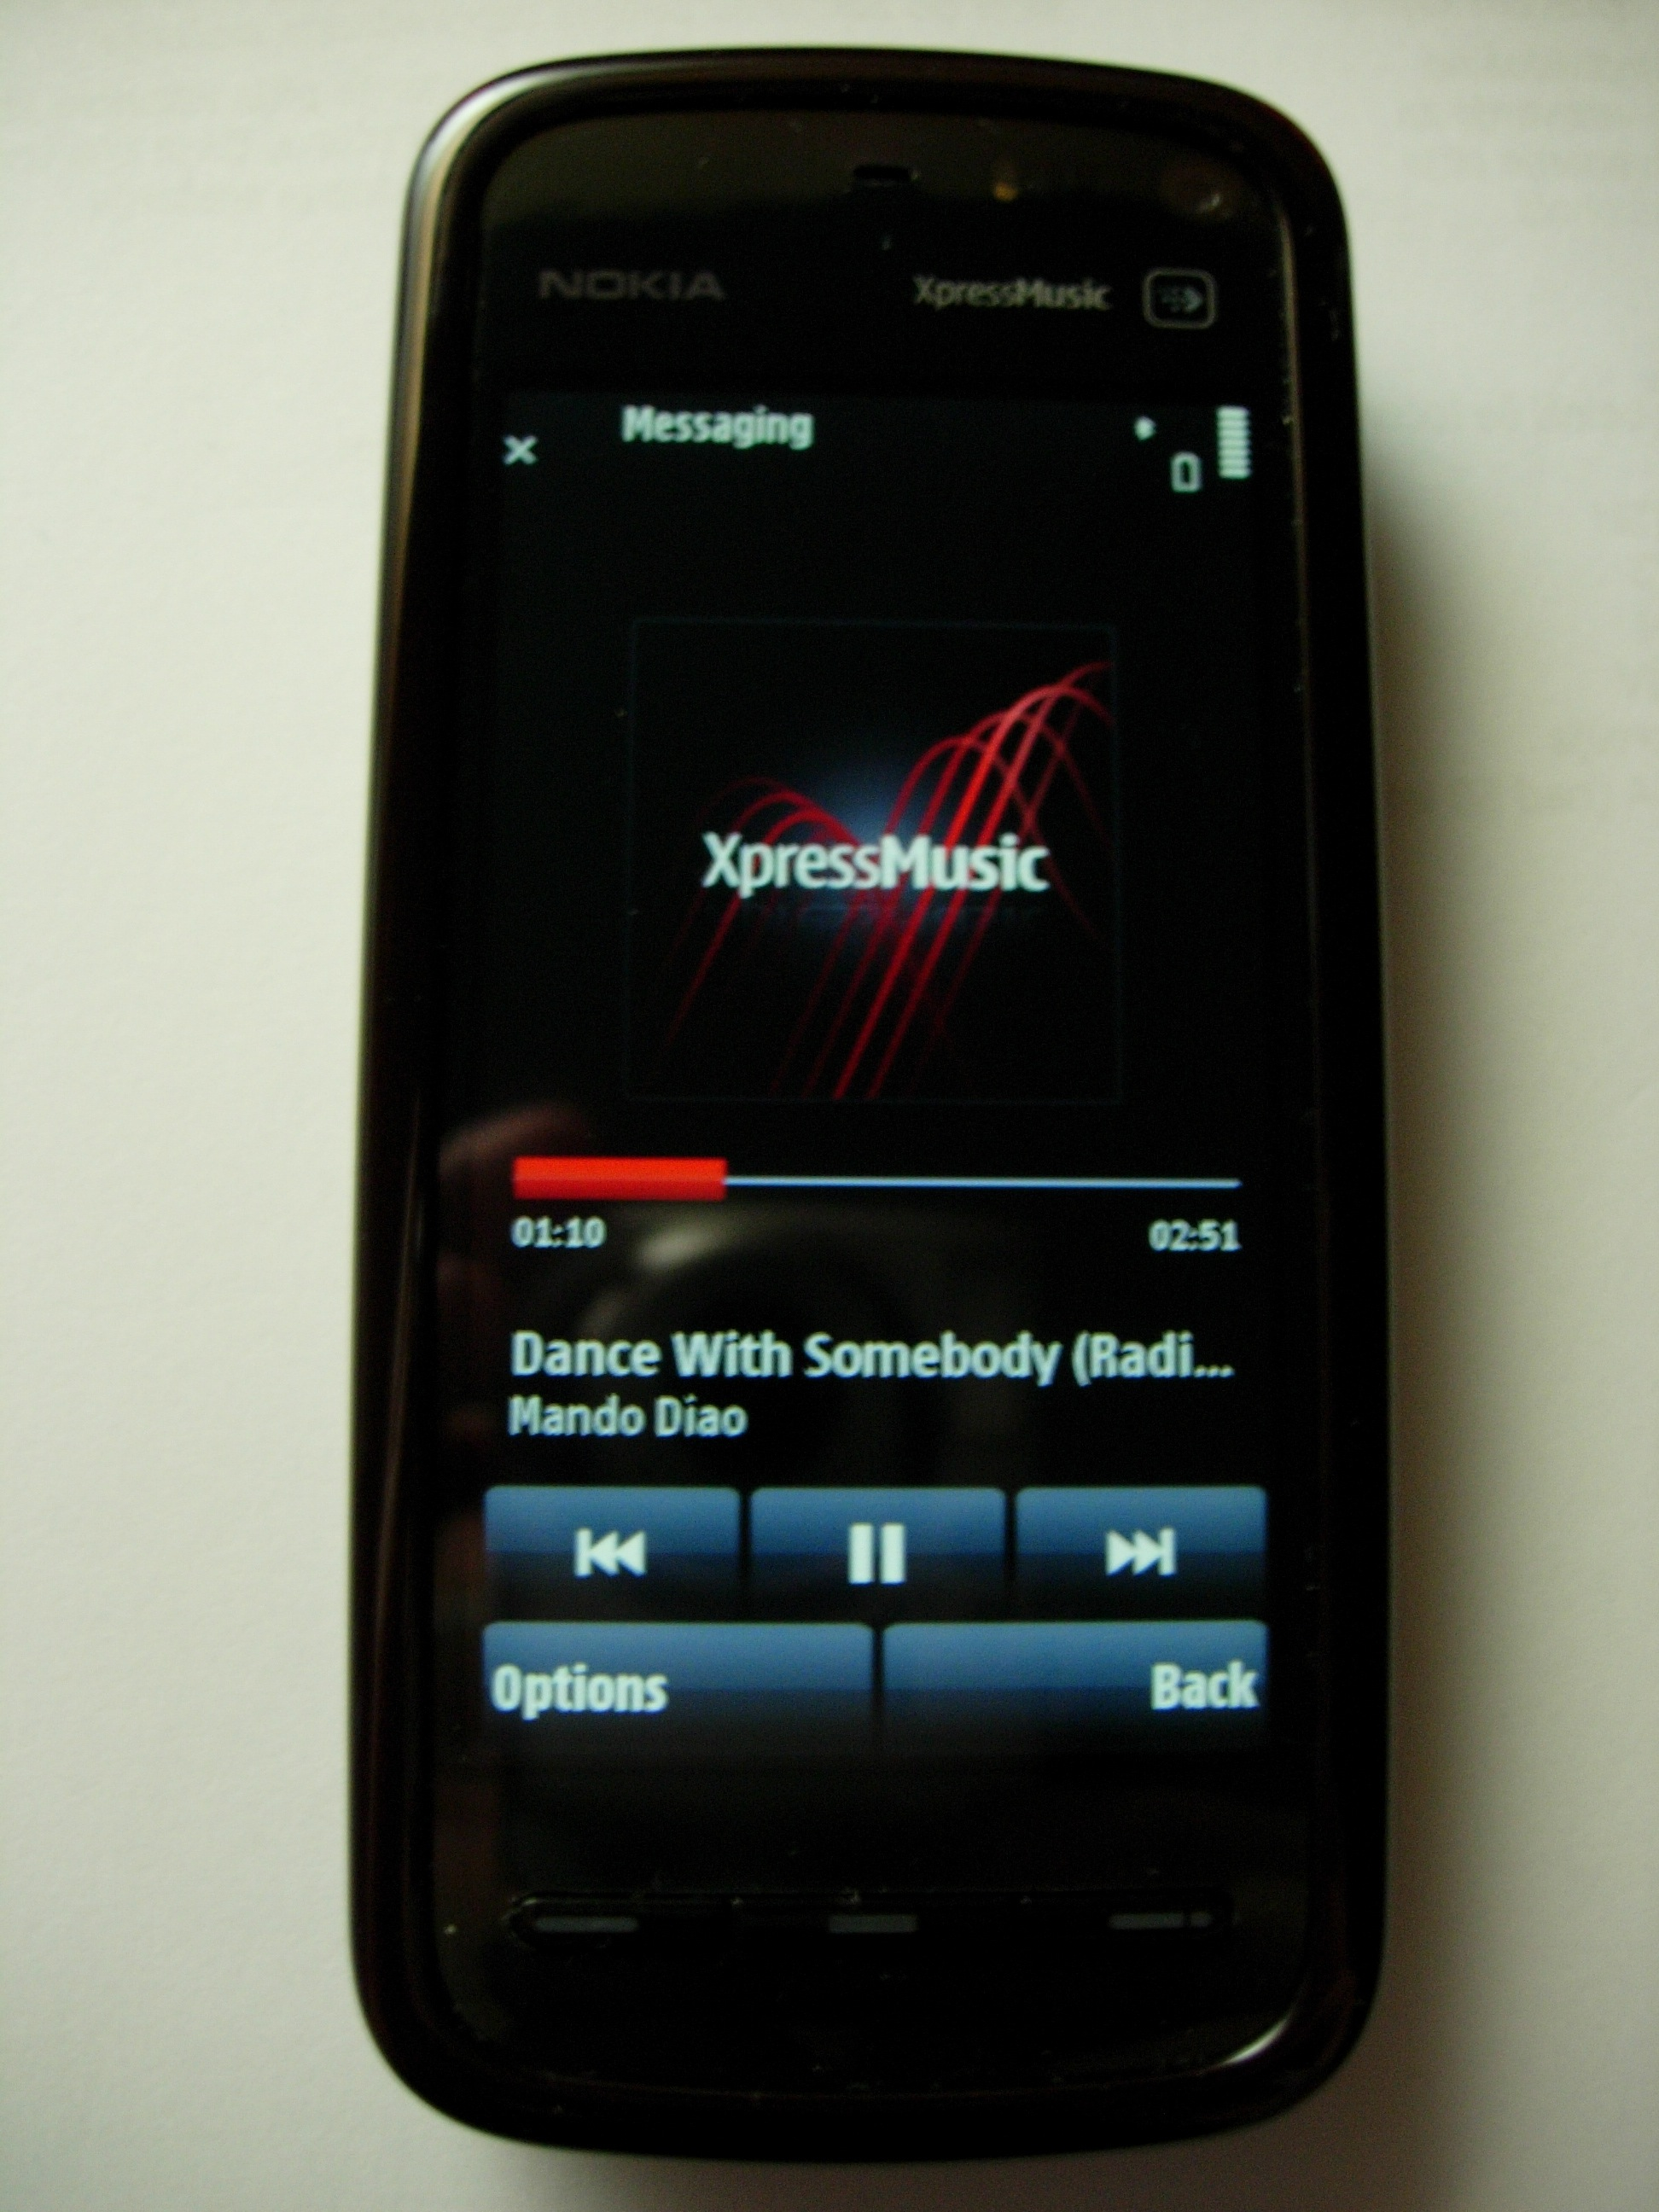 Nokia 5800 music player